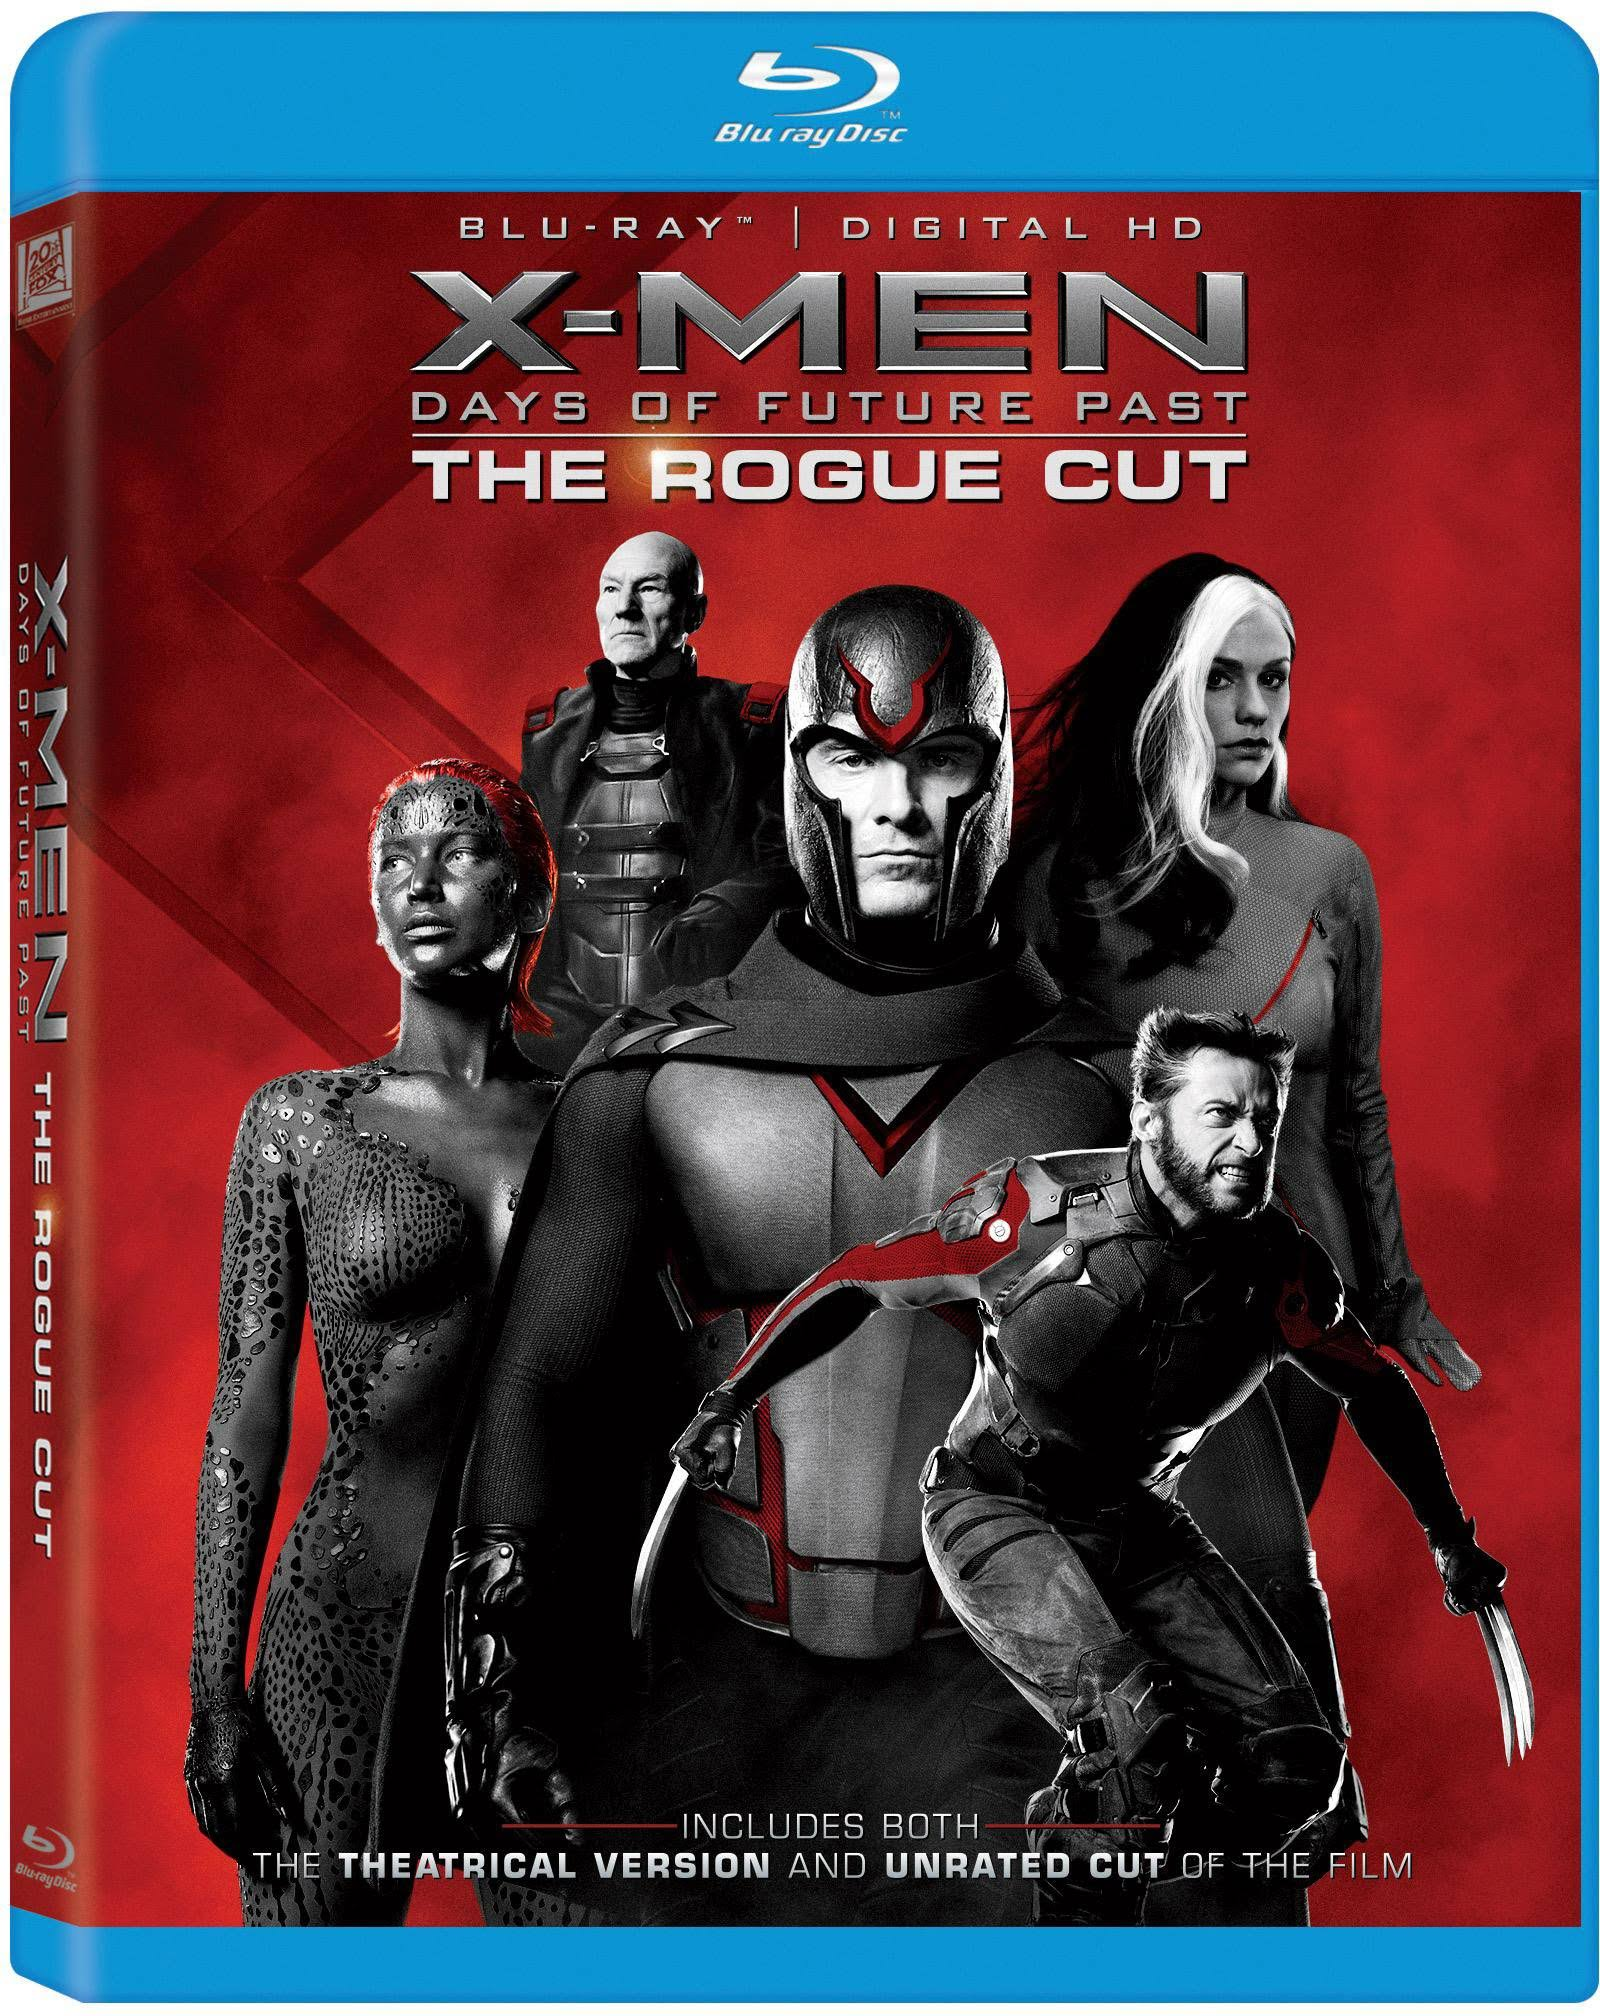 X-Men Days Of Future Past: The Rogue Cut Blu-Ray